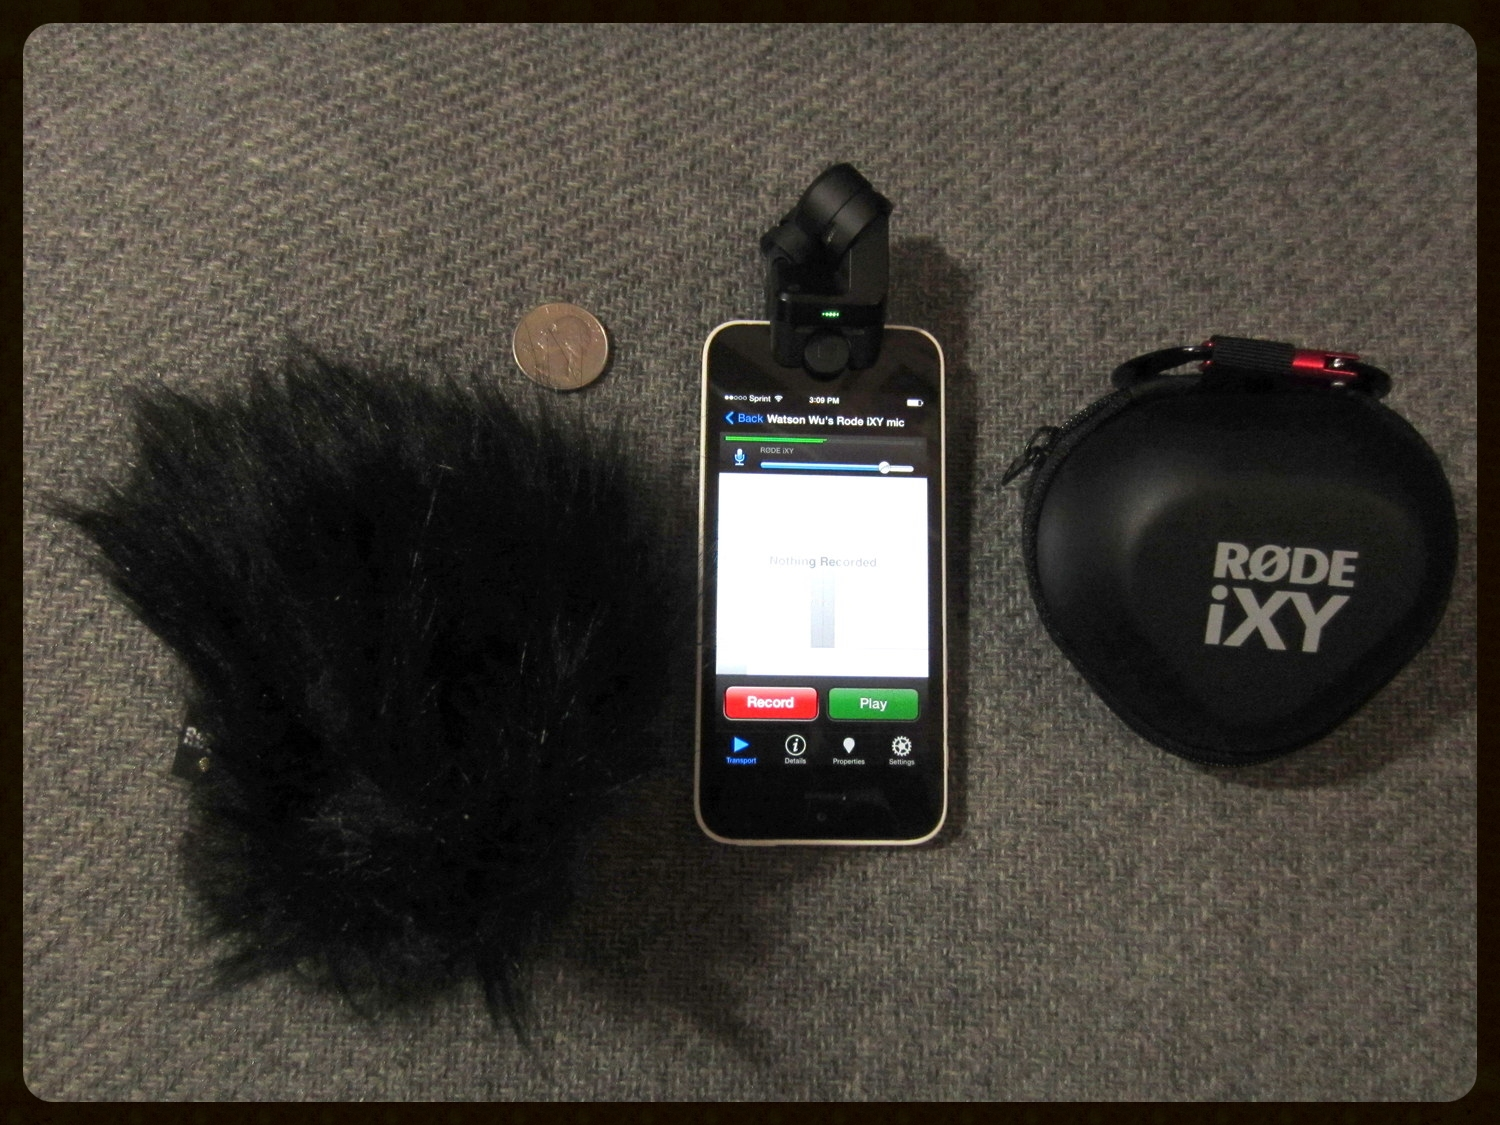 RØDE  Dead Kitten (an accessory), iXY Stereo Mic, and the included Carrying Case.